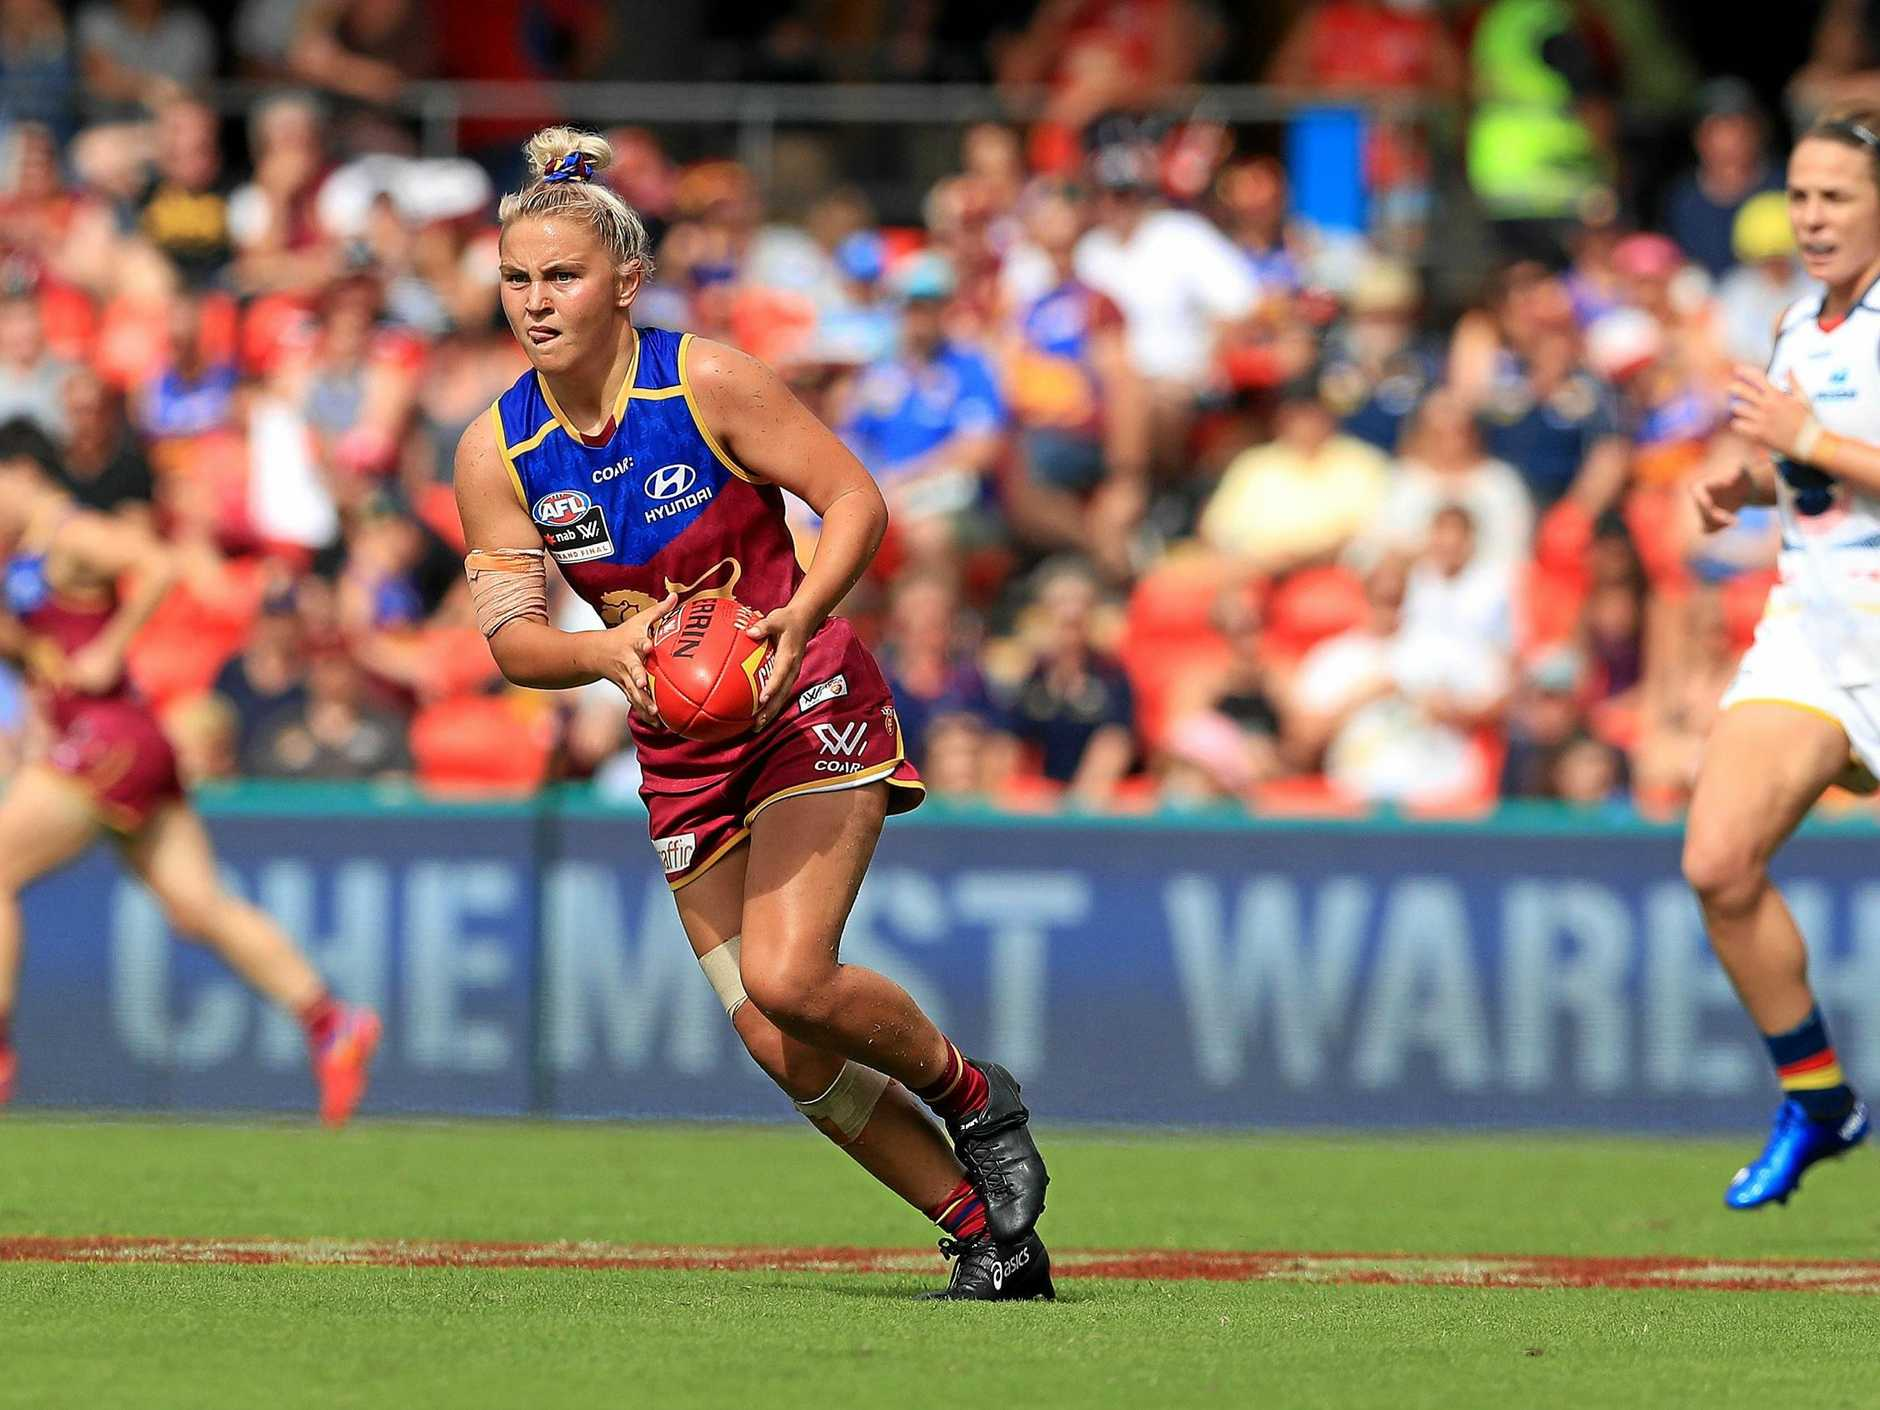 BIG IMPROVER: Megan Hunt in action during the AFLW grand final against the Adelaide Crows at Metricon Stadium on the Gold Coast.